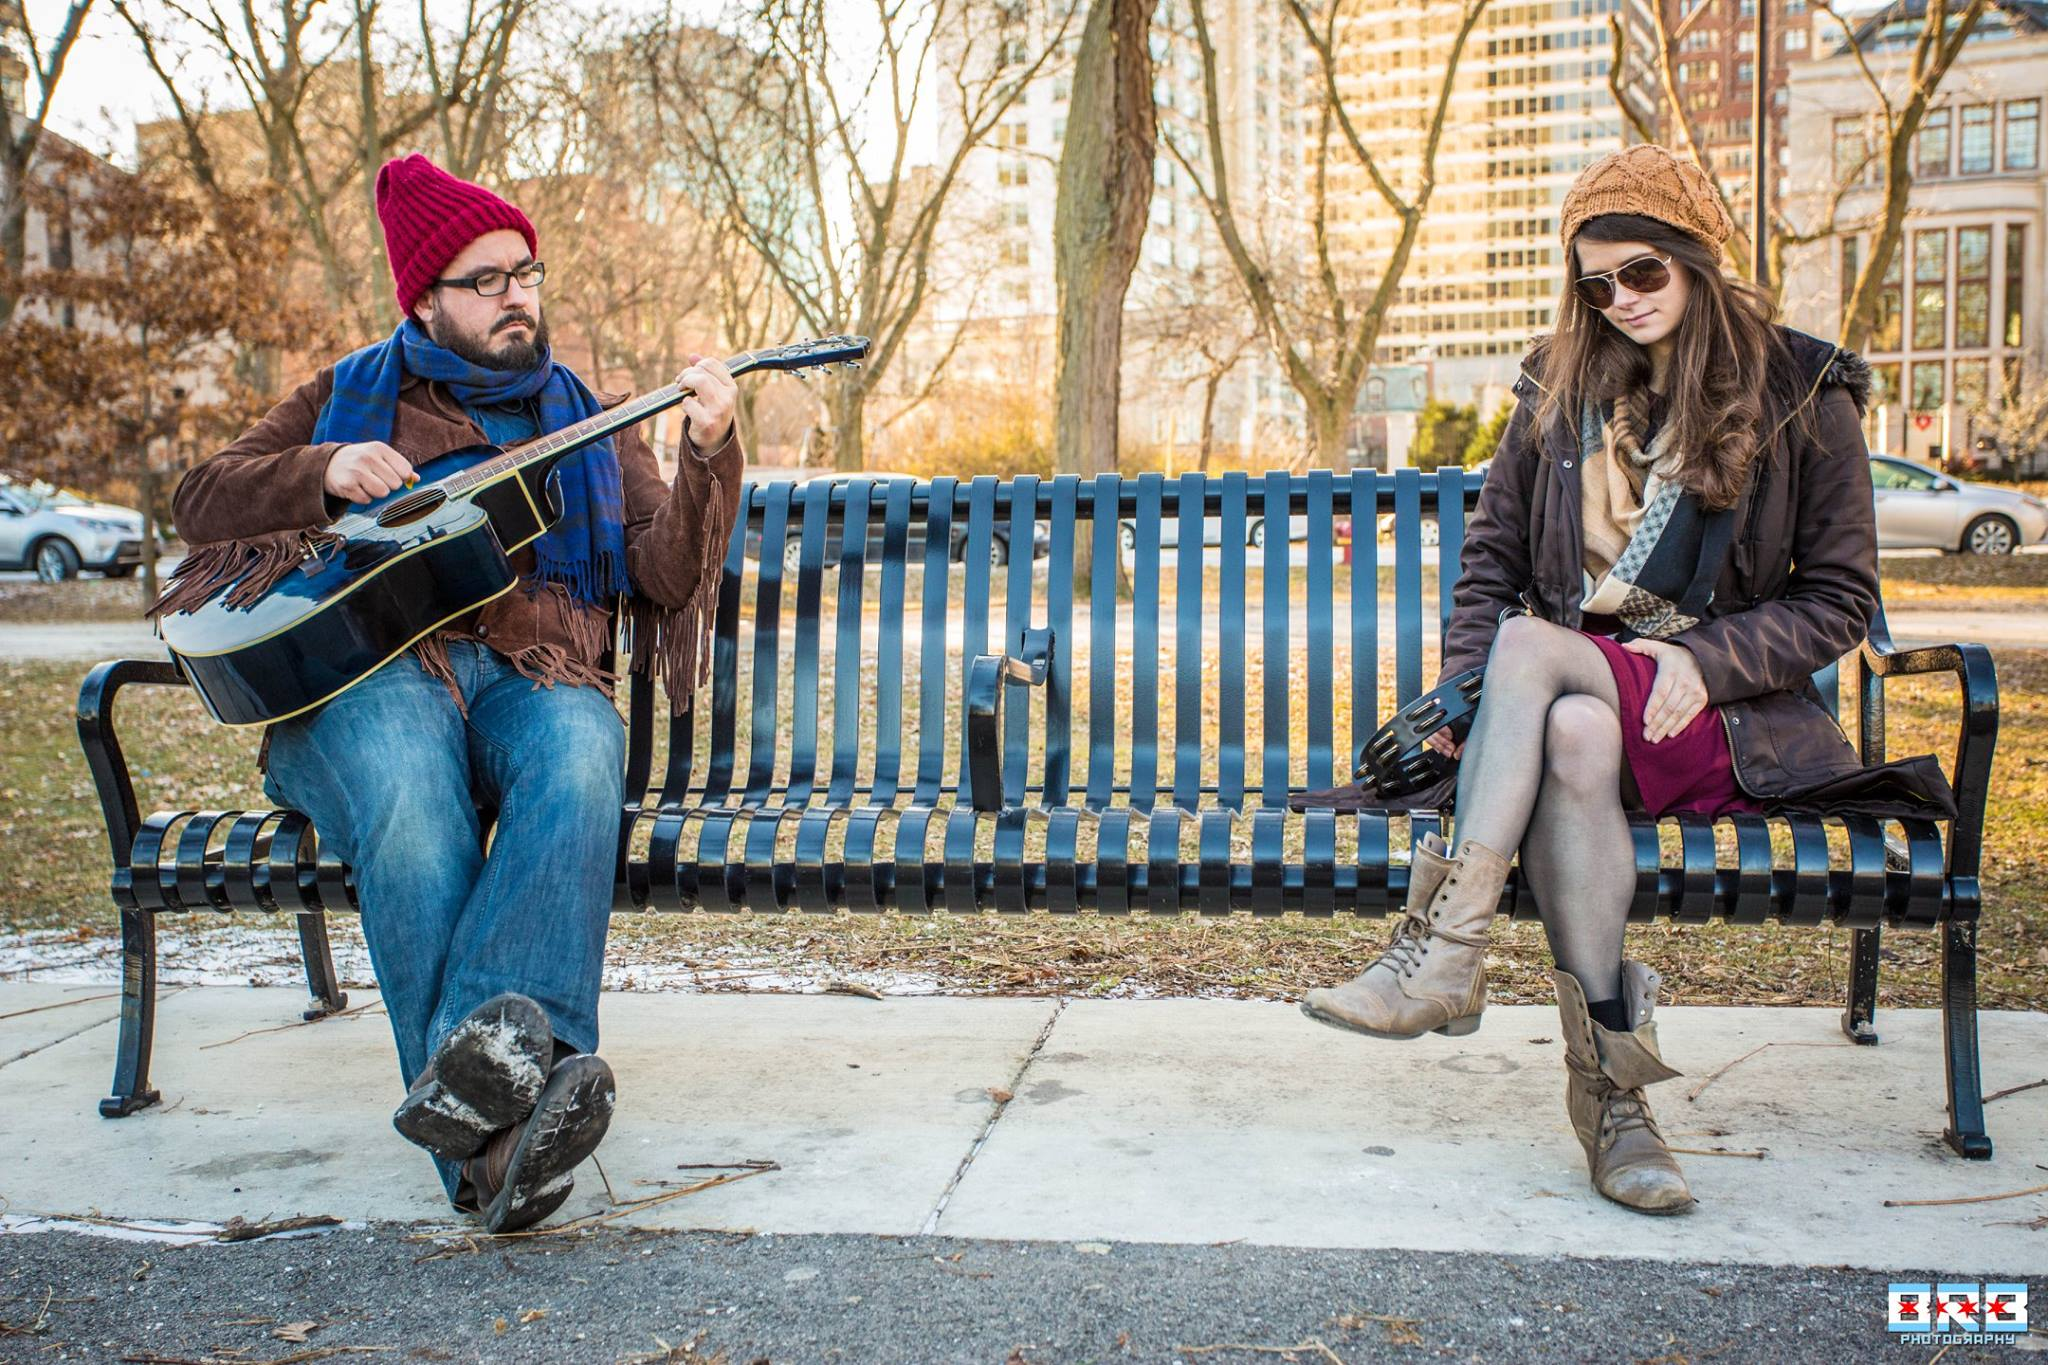 Tiny Shoulders - Tiny Shoulders is a folk duo based in Chicago, Il. and consists of Travis Cook (guitar, vocals) and Leigh Yenrick (vocals, percussion). They do not care for pigeons. They have big dreams, but such tiny shoulders.